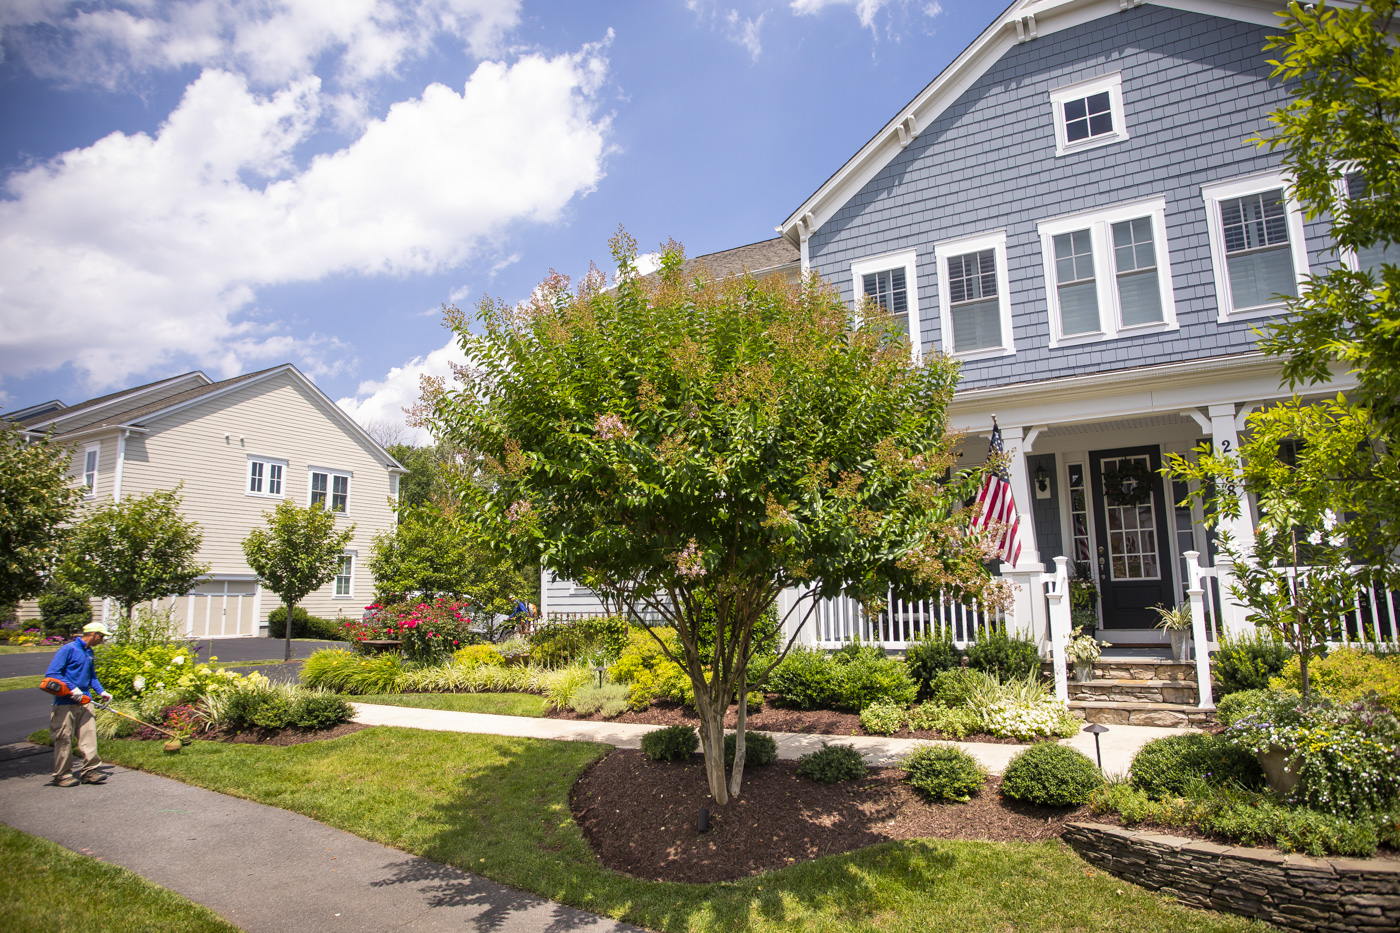 Healthy lawn with trees and shrubs